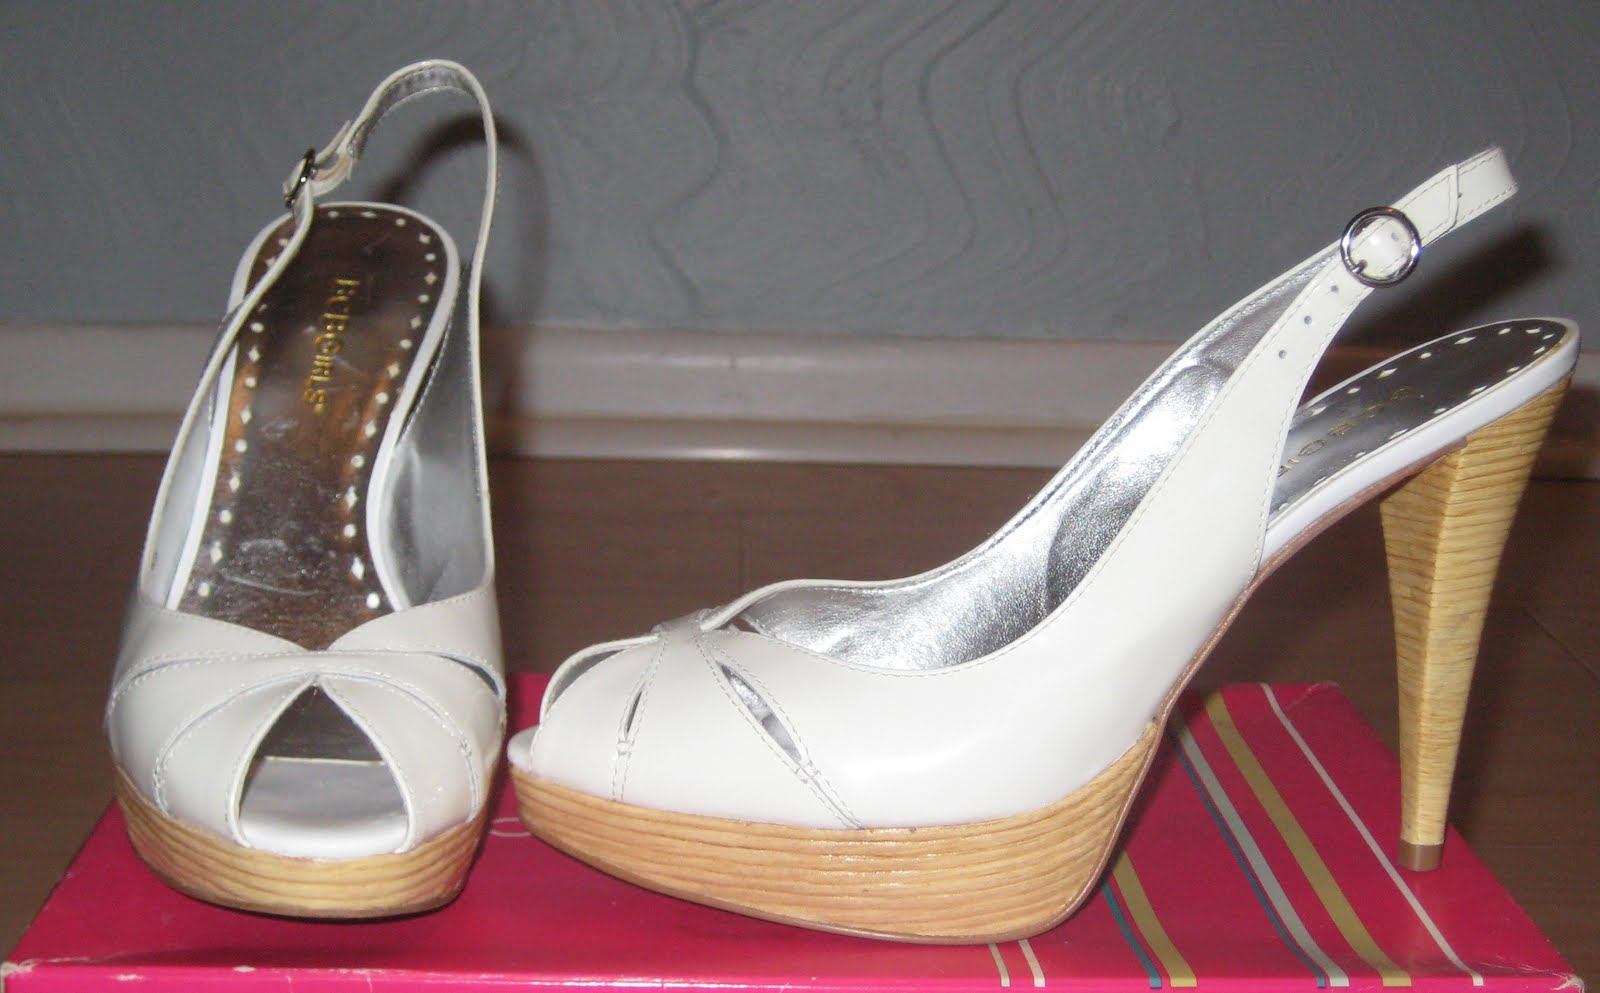 524a27636fa3 Right now I have a few pairs of heels (two pairs of BCBGirls and one  Michael Antonio) up for auction. During the next two weeks or so I will be  adding a ...